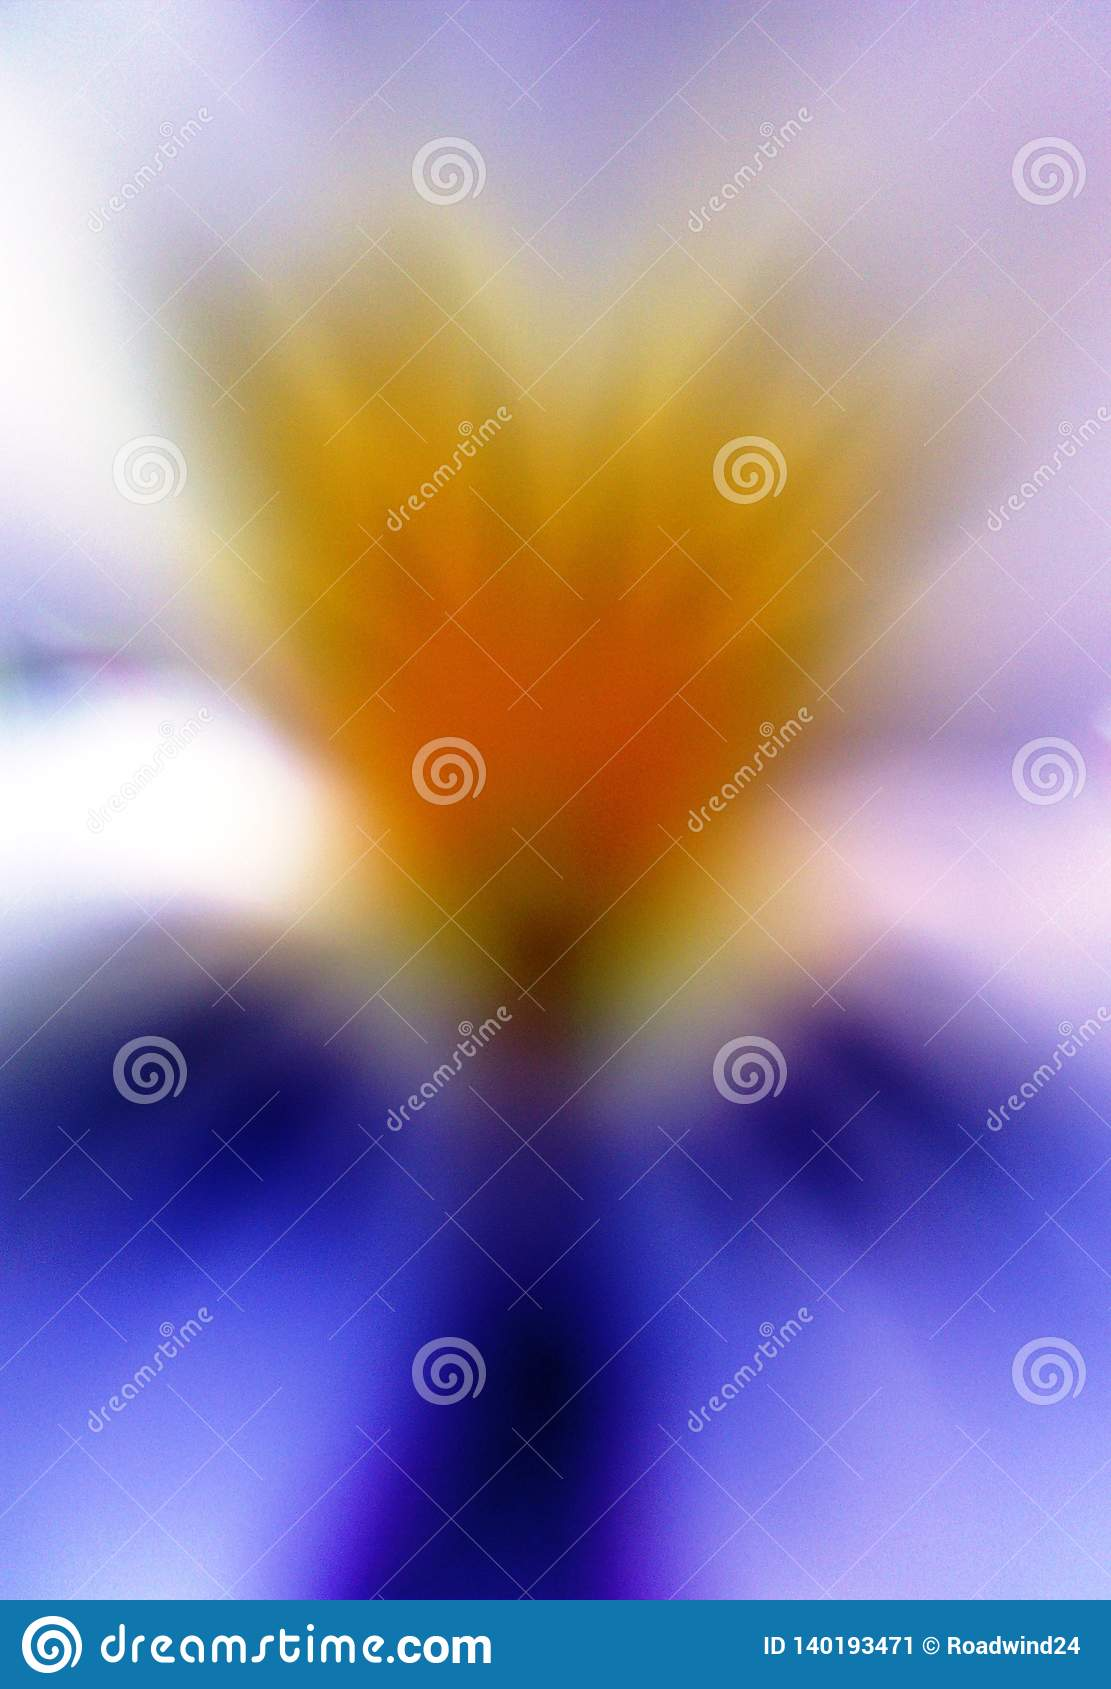 Abstract angel like flower viola tricolor